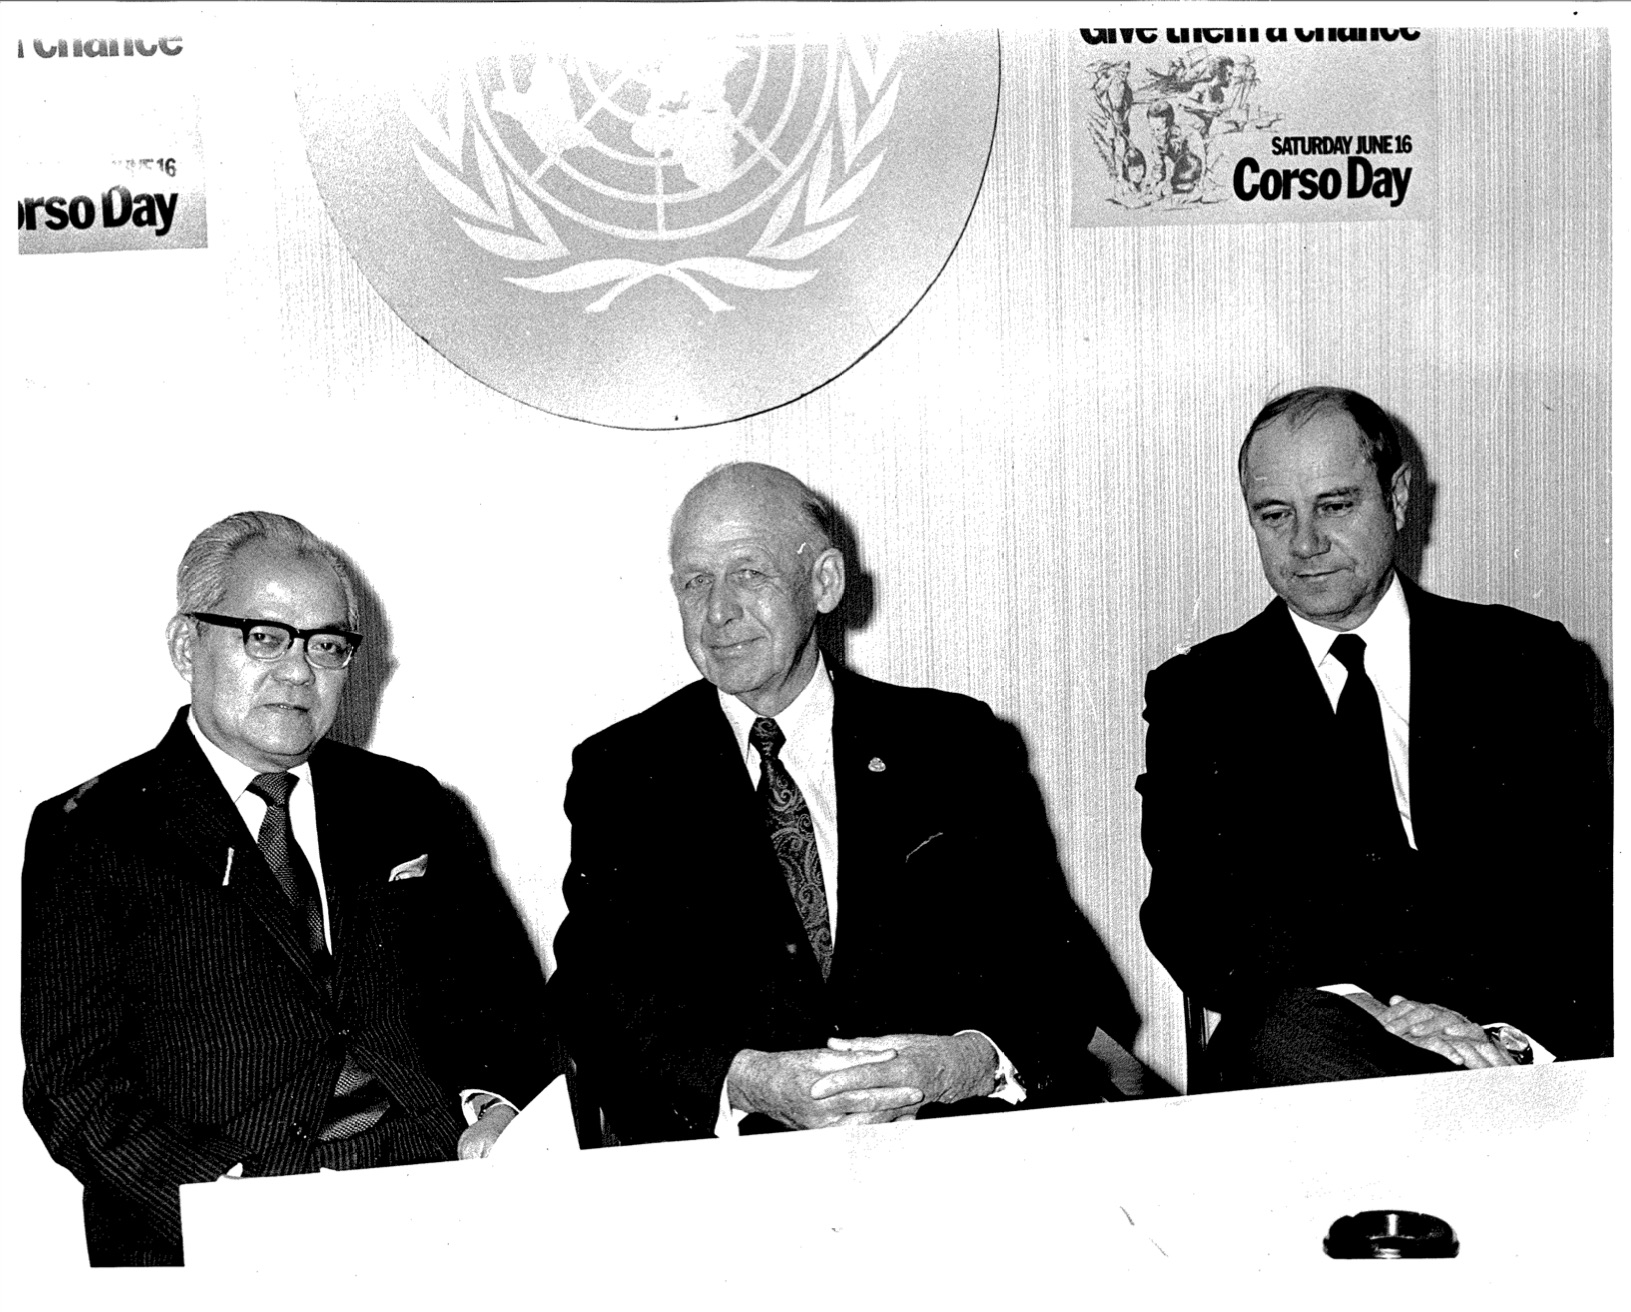 Frank Bauman, right, in his role as Australia's chief diplomat to the United Nations.